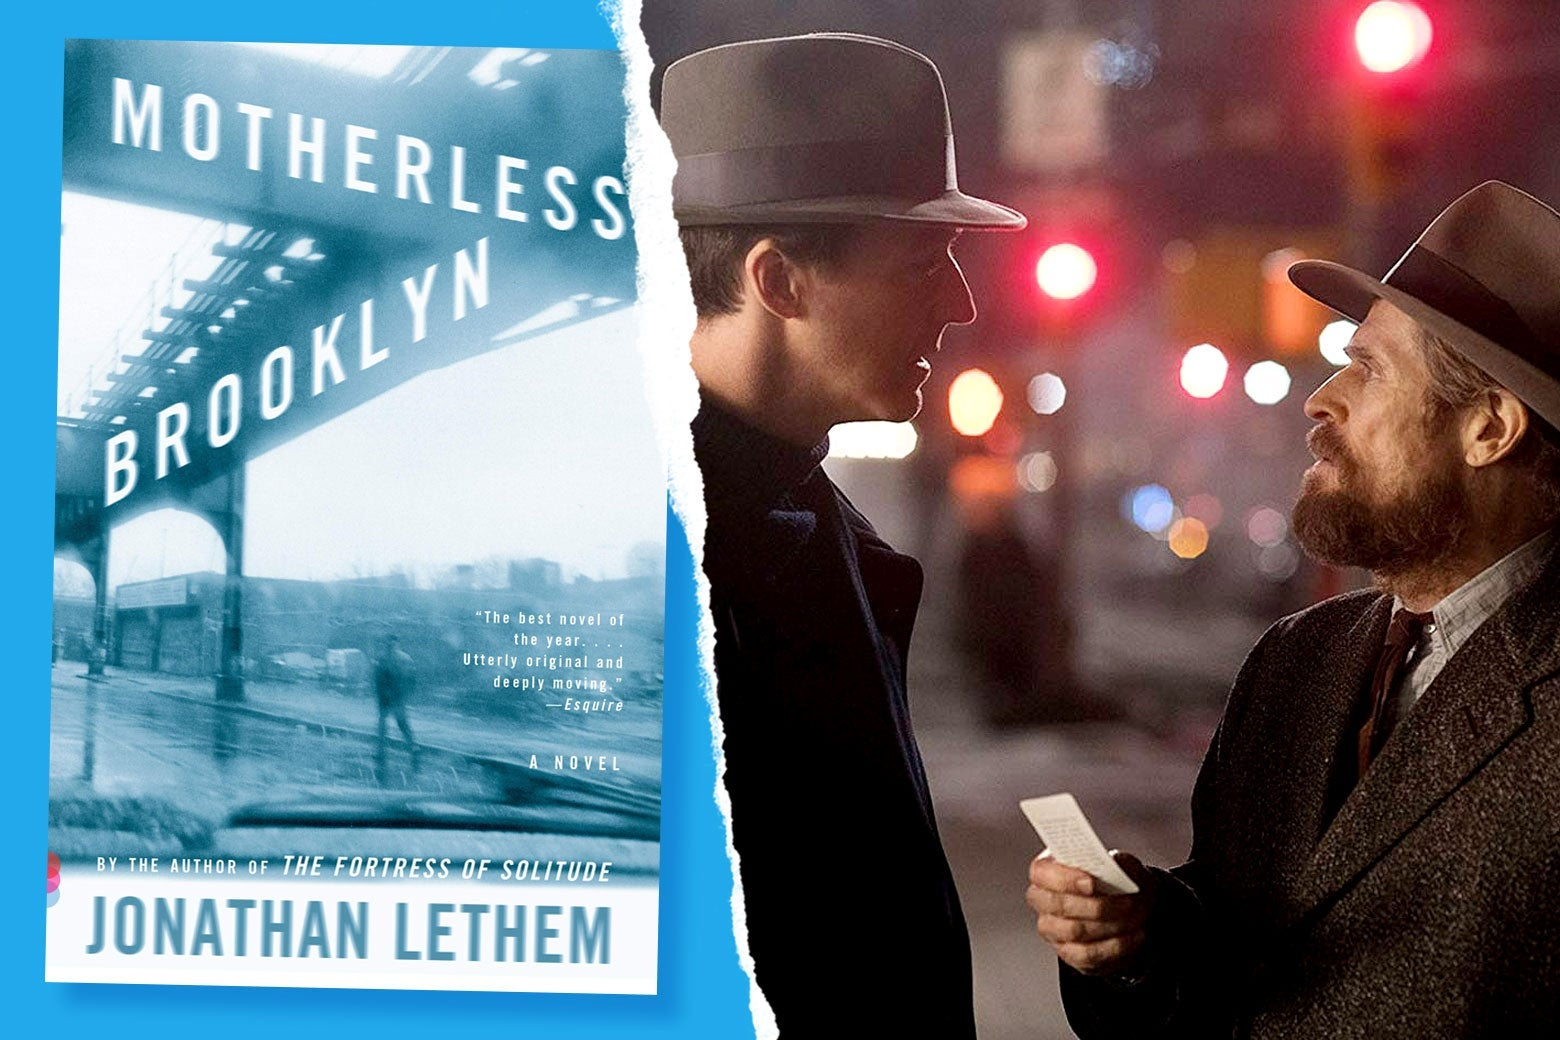 Motherless Brooklyn movie vs. book: the differences between Jonathan Lethem's novel and Edward Norton's adaptation. - Slate